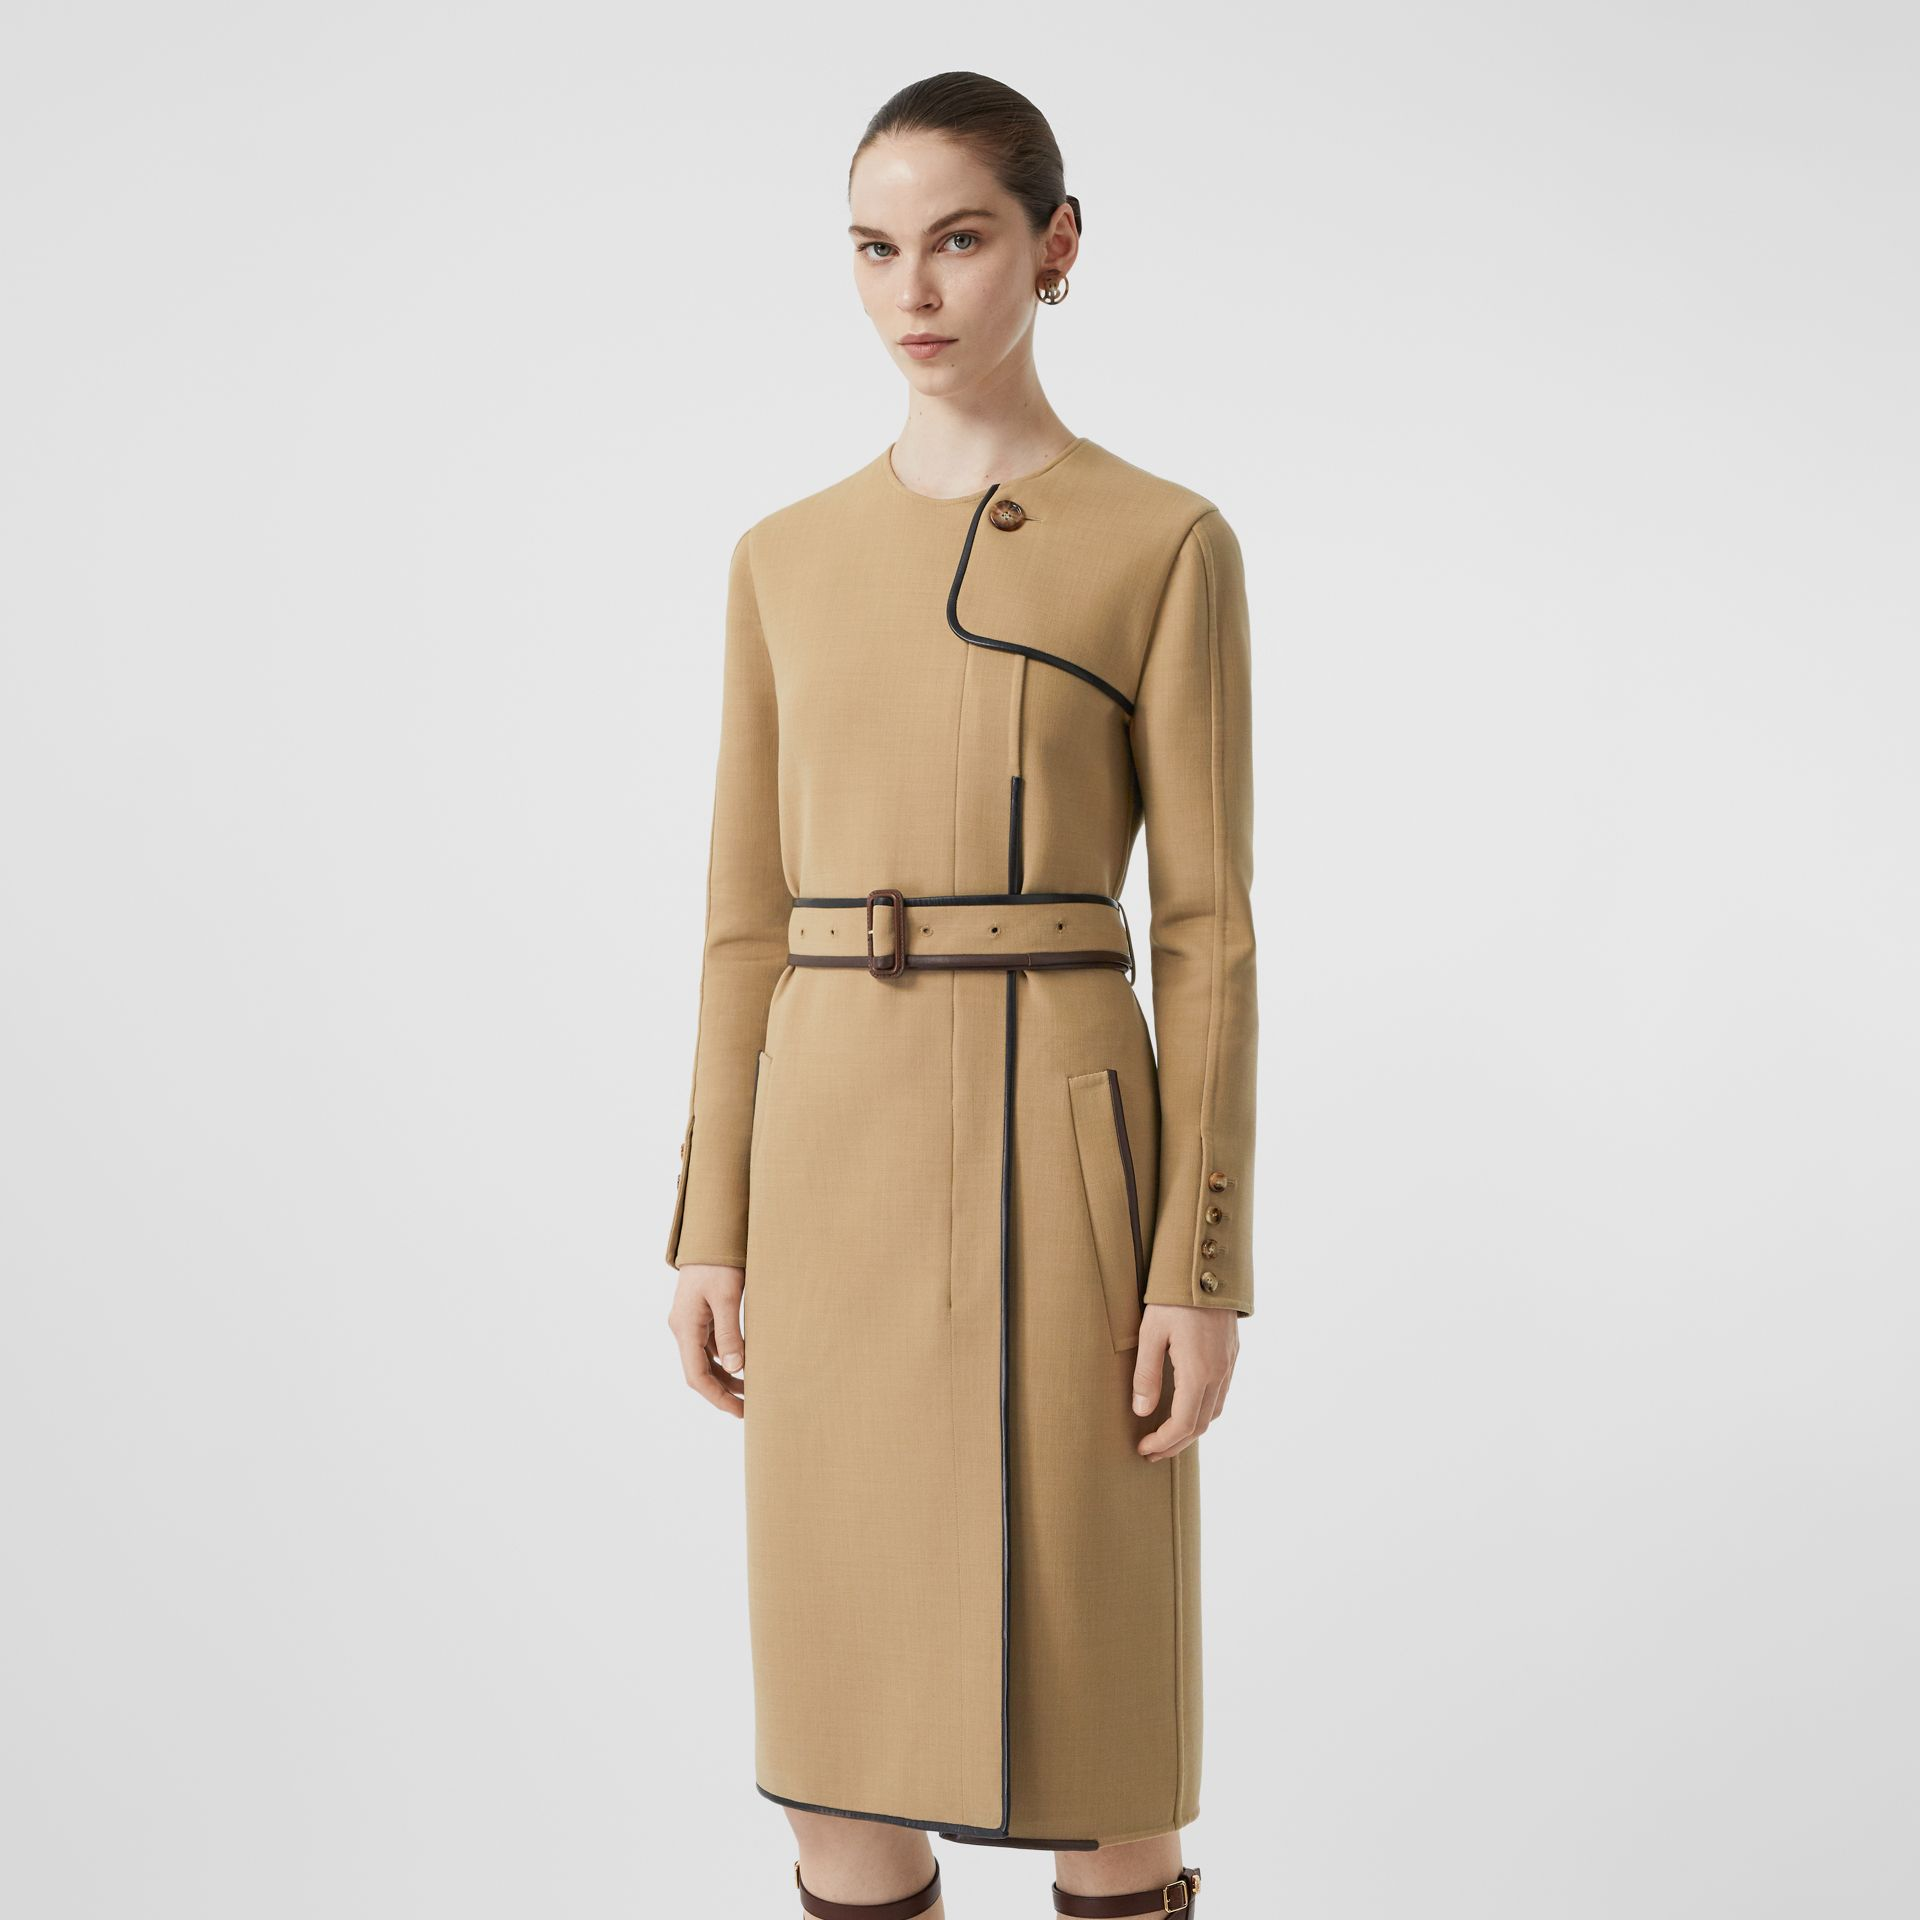 Lambskin Trim Technical Wool Belted Dress in Honey - Women | Burberry Australia - gallery image 5